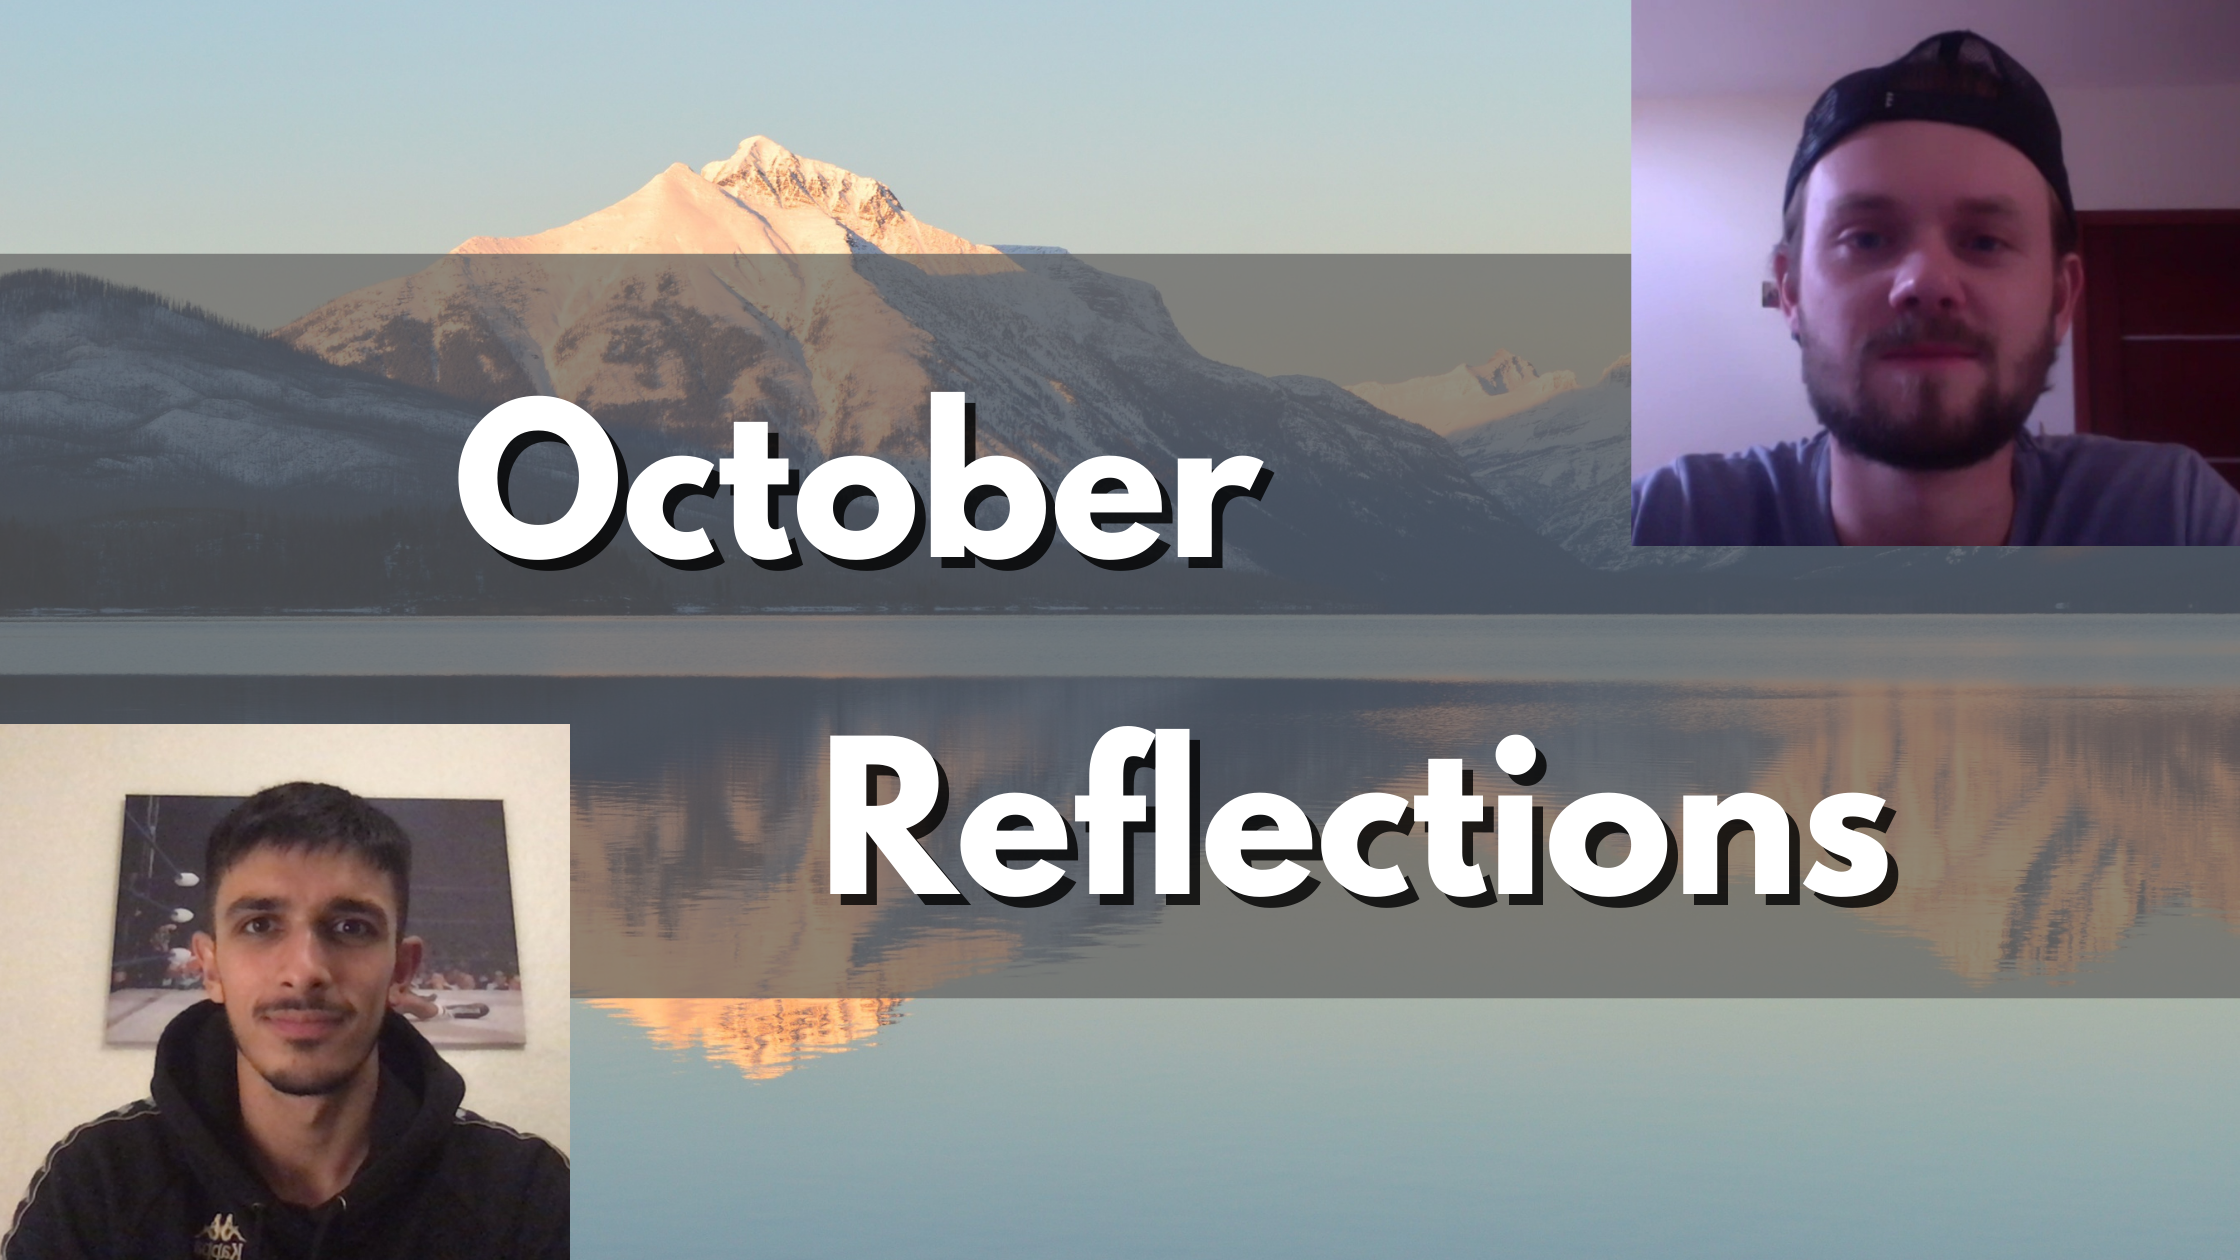 October Reflections